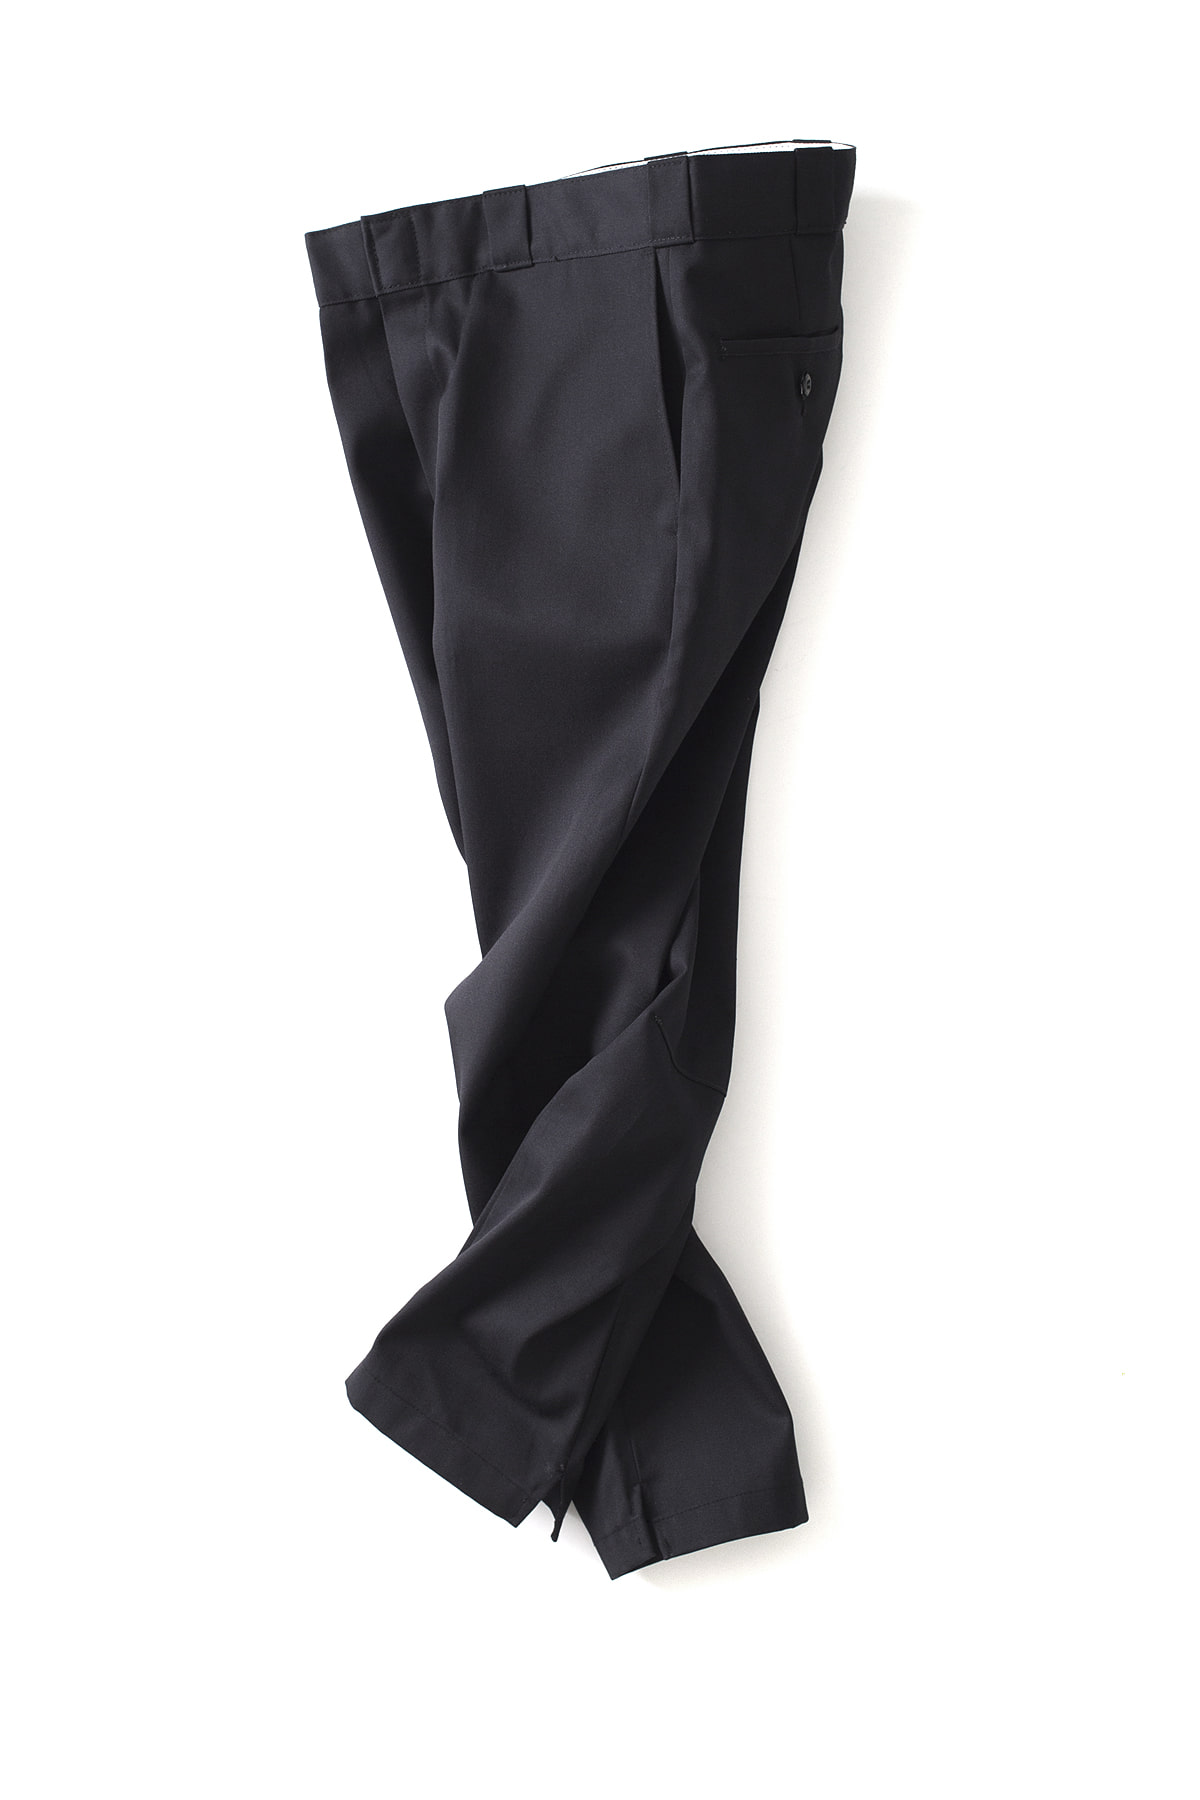 forumwear : 874 Remake Pants (Black)